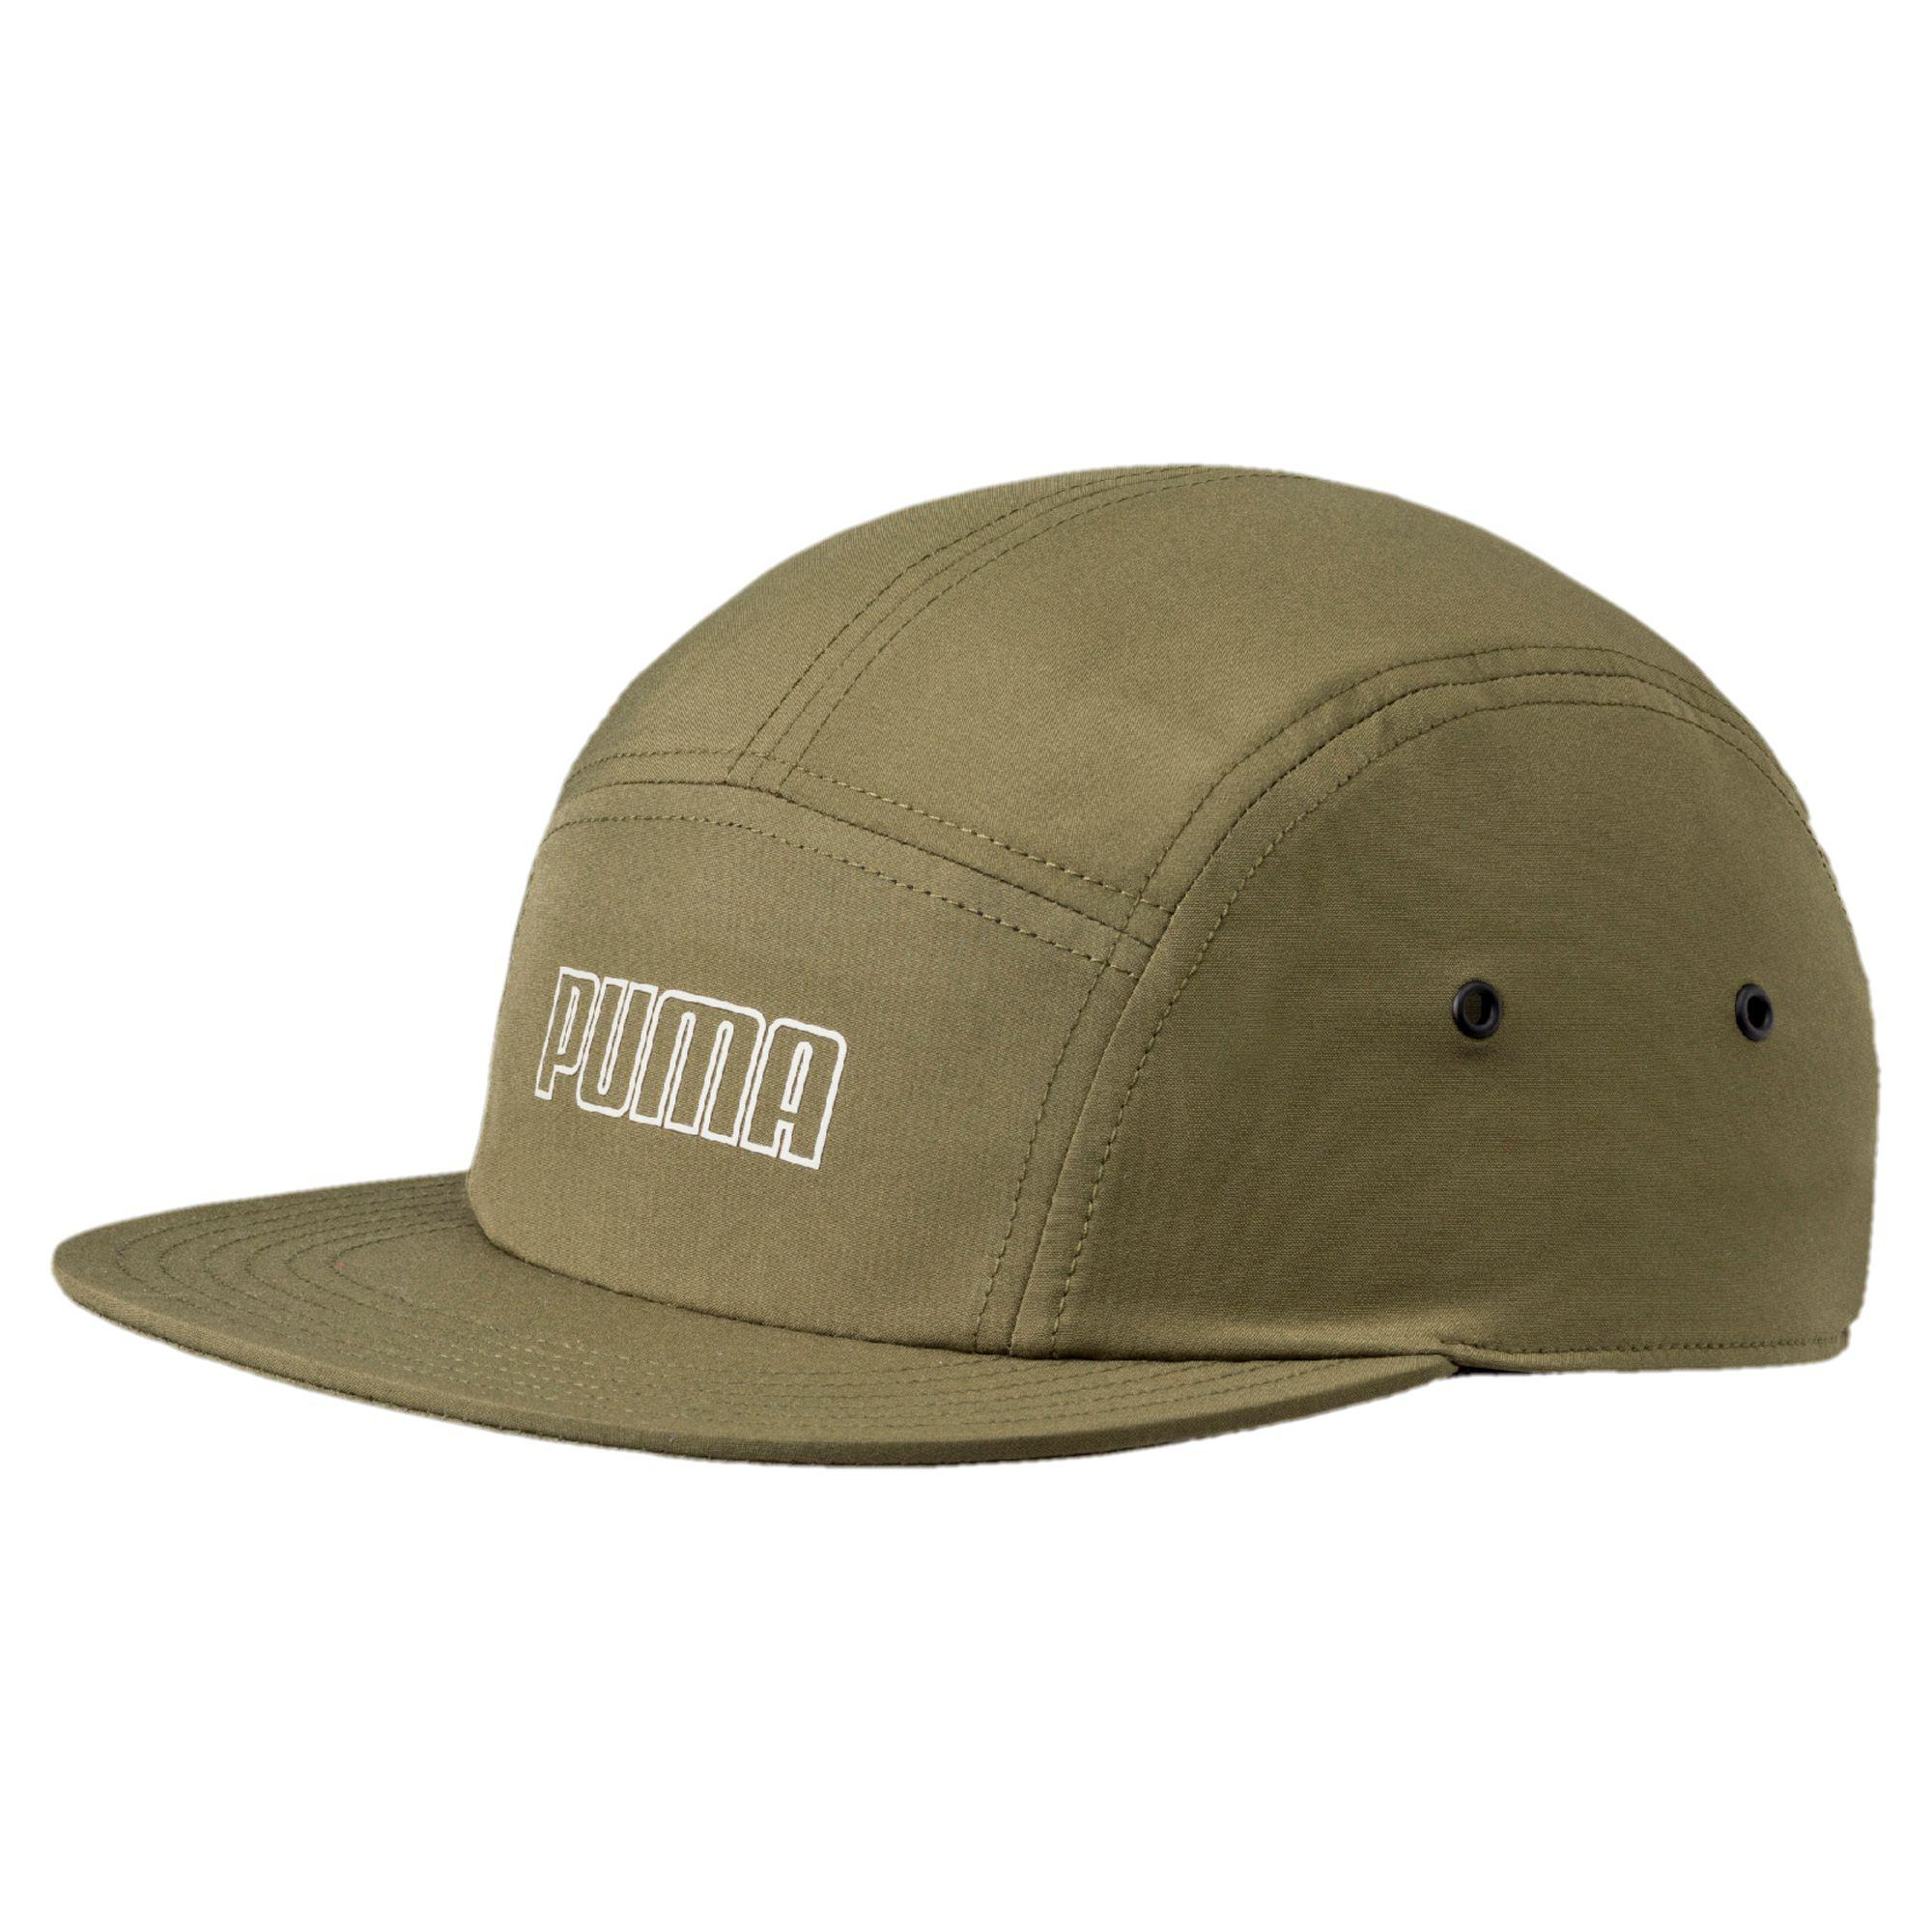 Lyst - PUMA Archive 5-panel Hat in Green for Men 764eb9674d6